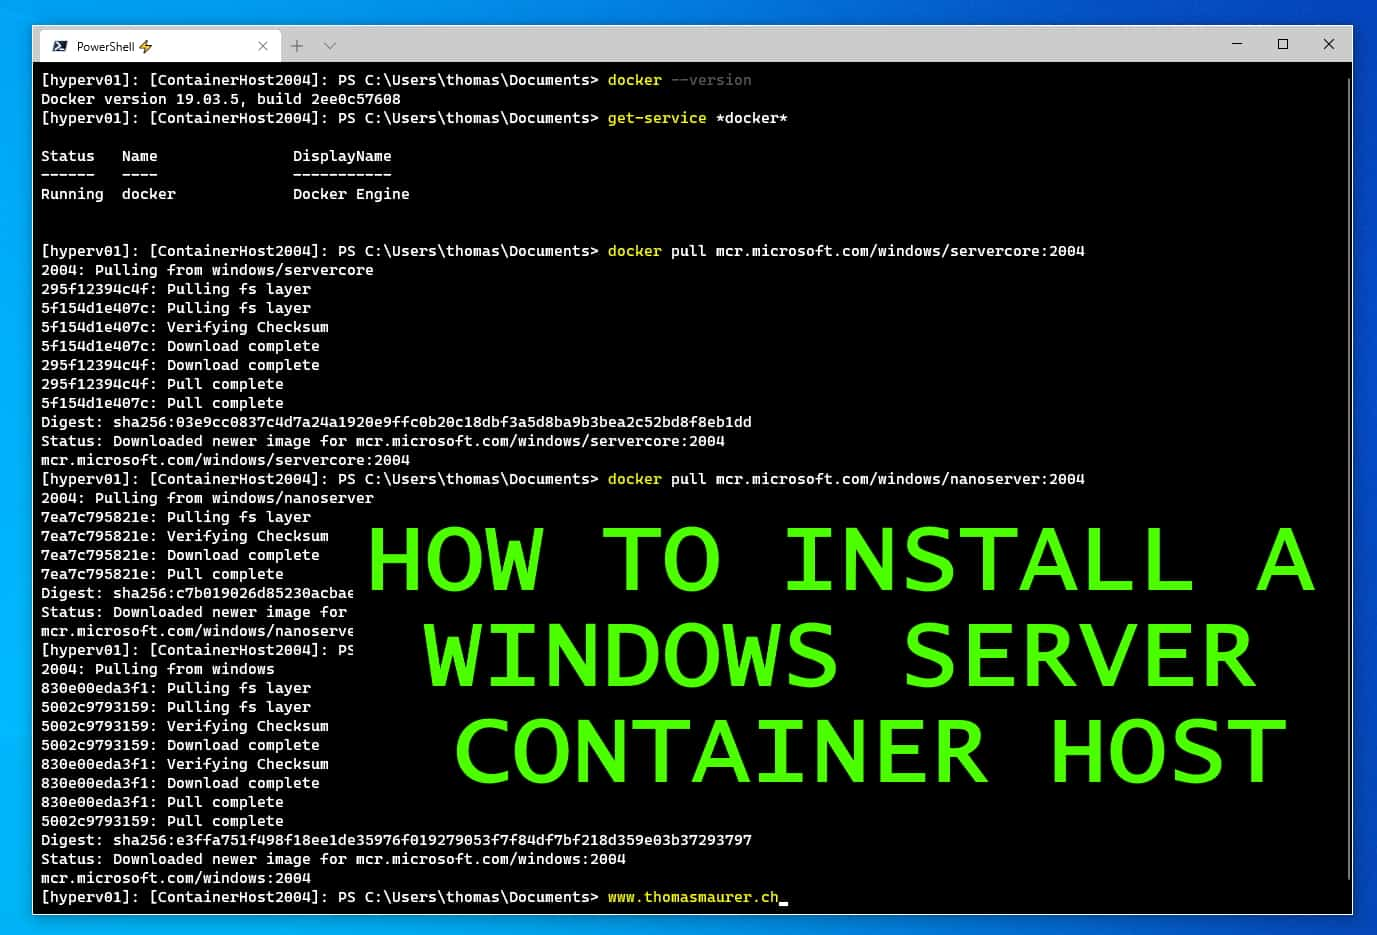 How to Install a Windows Server Container Host